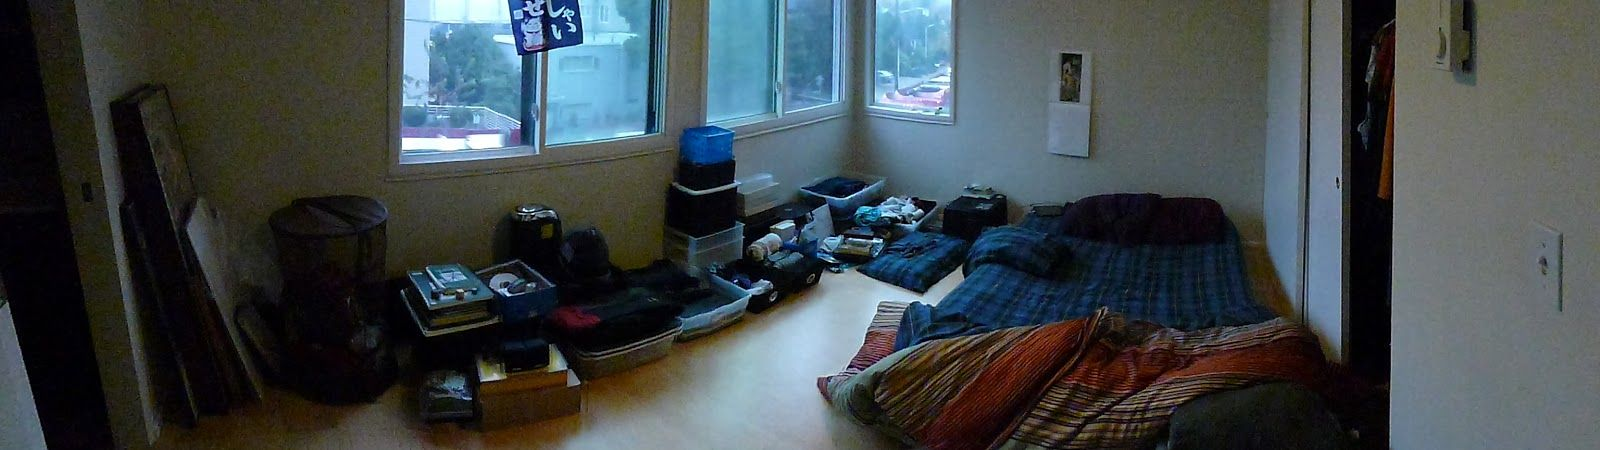 A room with a bed on the floor and a relatively small collection of belongings.